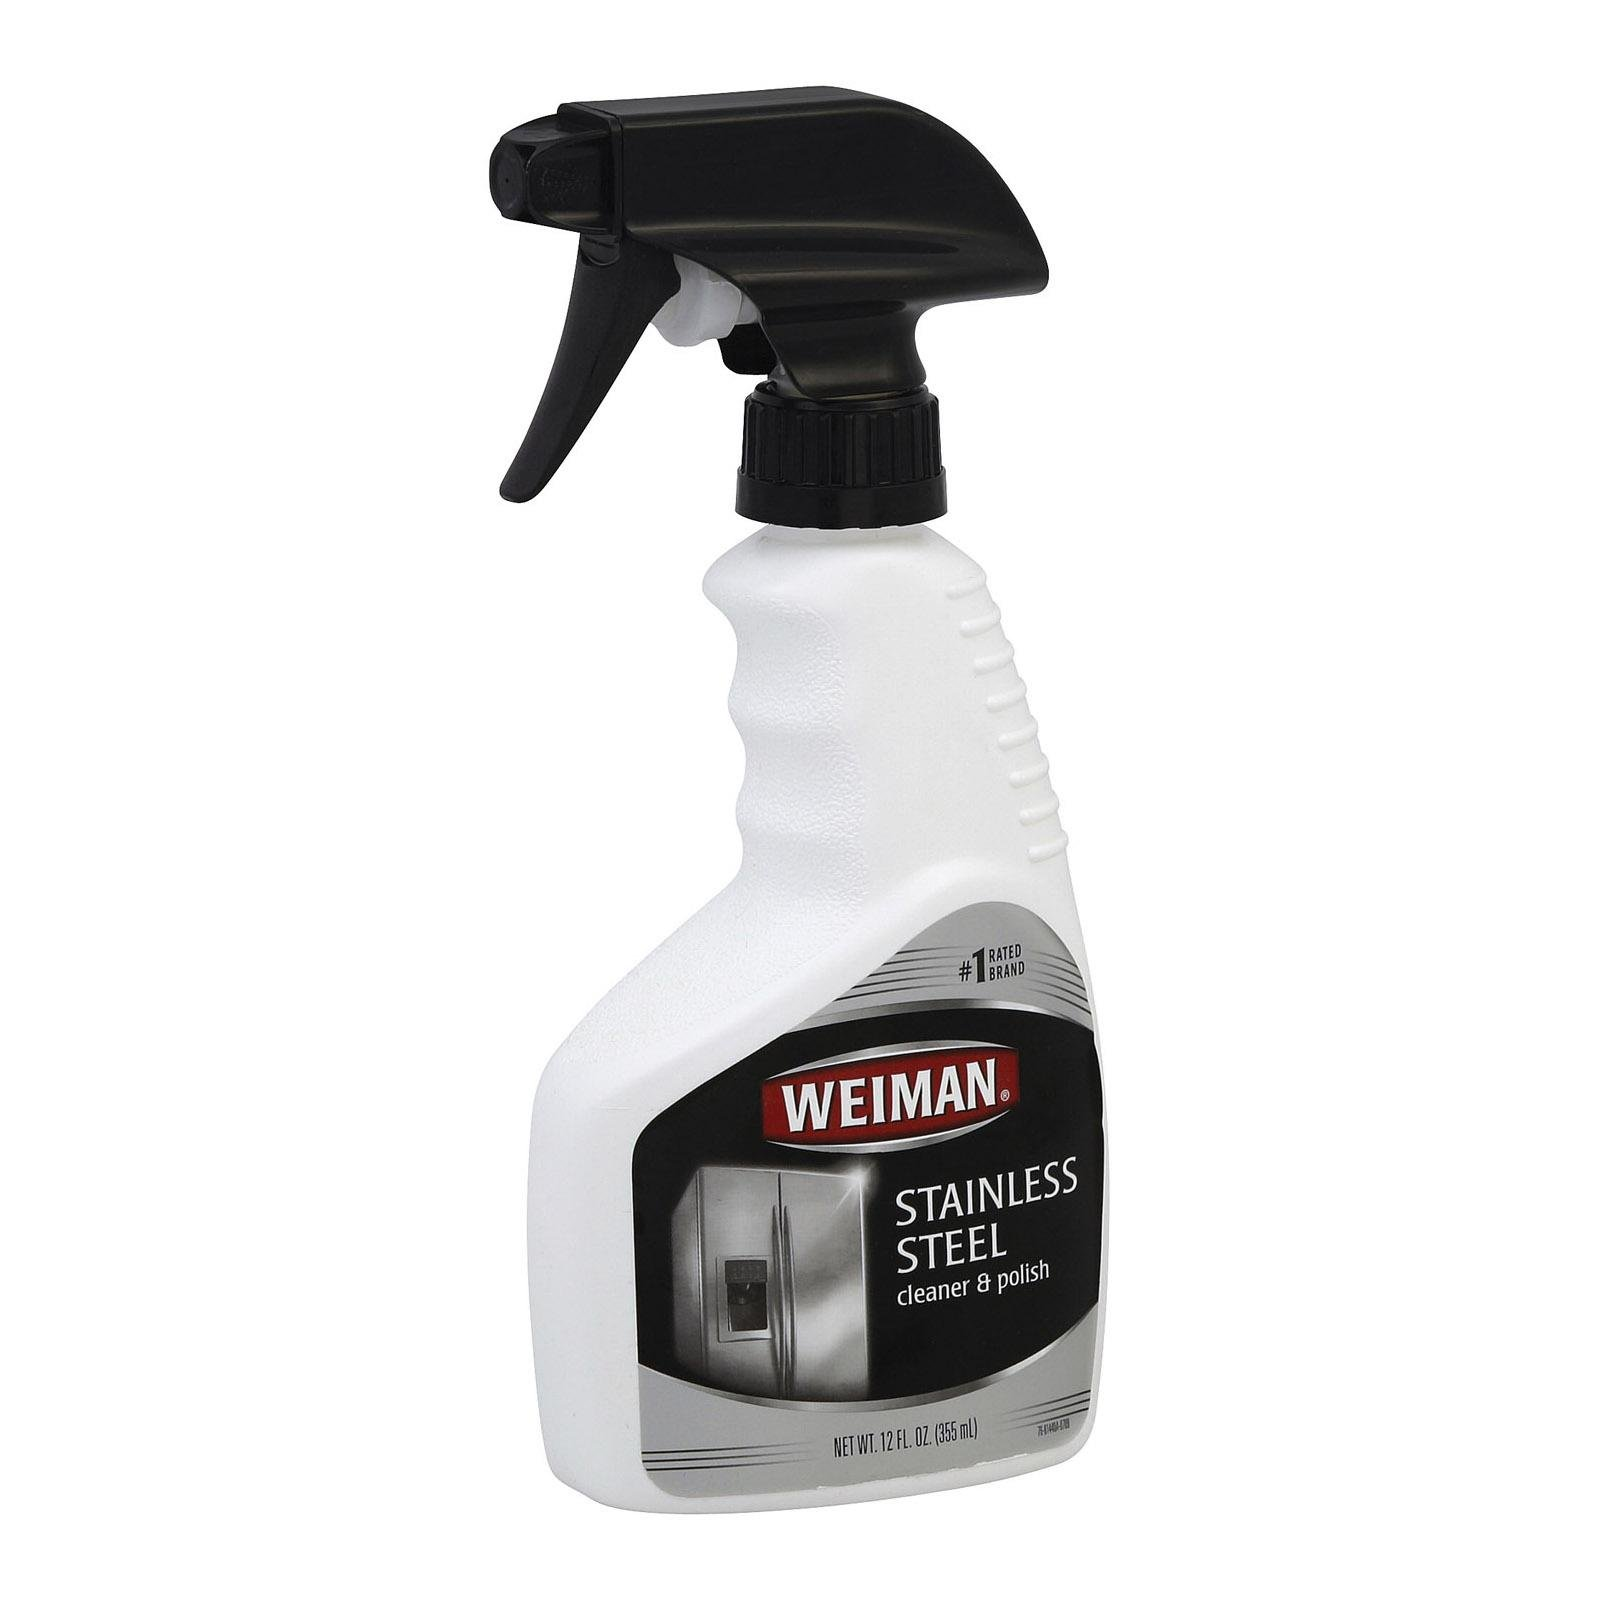 Weiman Stainless Steel Cleaner Spray, 12 Ounce - 6 per case.